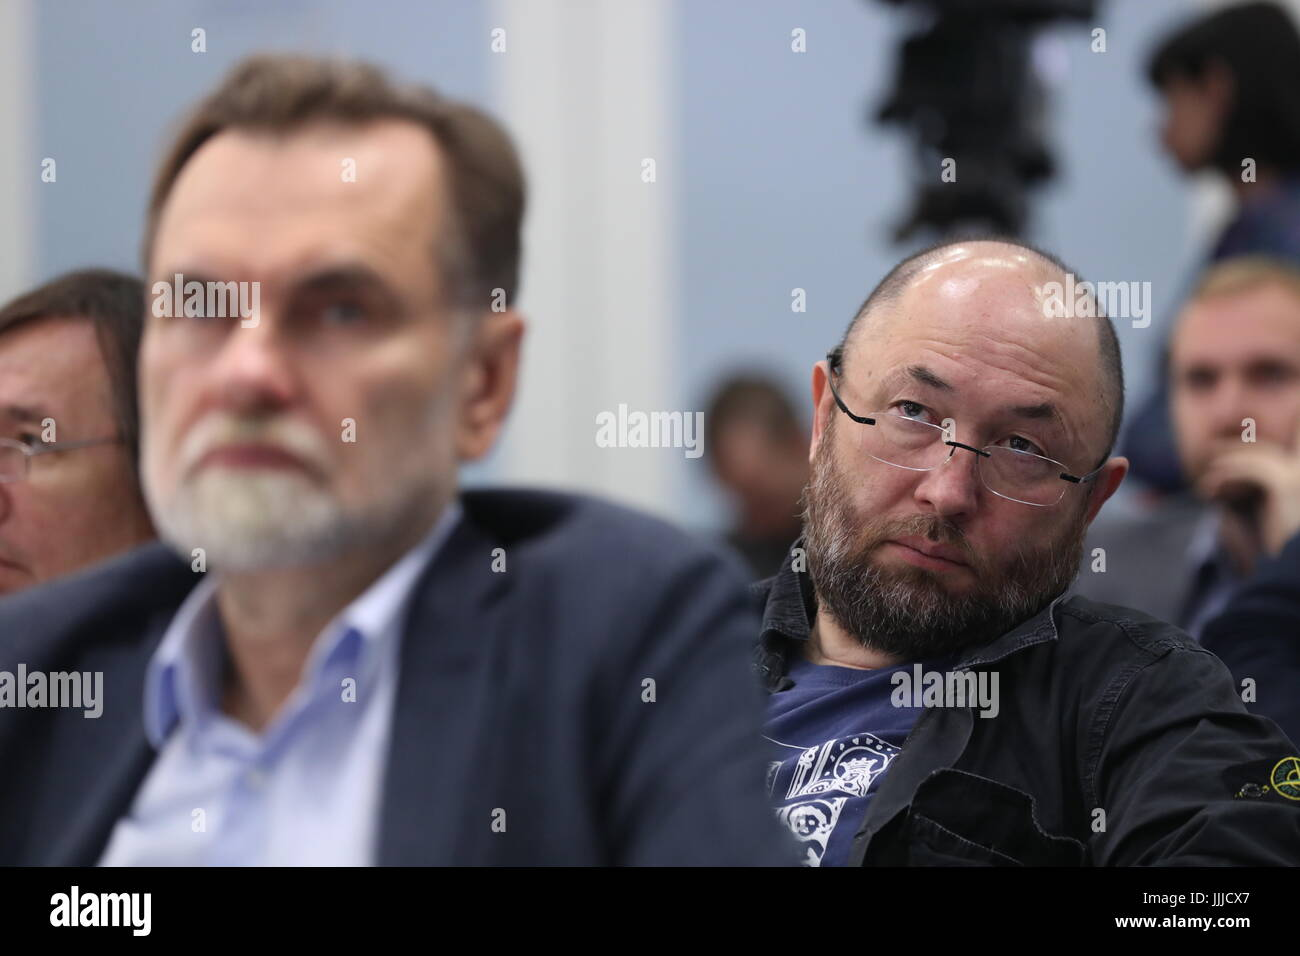 Moscow, Russia. 20th July, 2017. Film producer Sergei Selyanov (L) and film director and producer Timur Bekmambetov - Stock Image